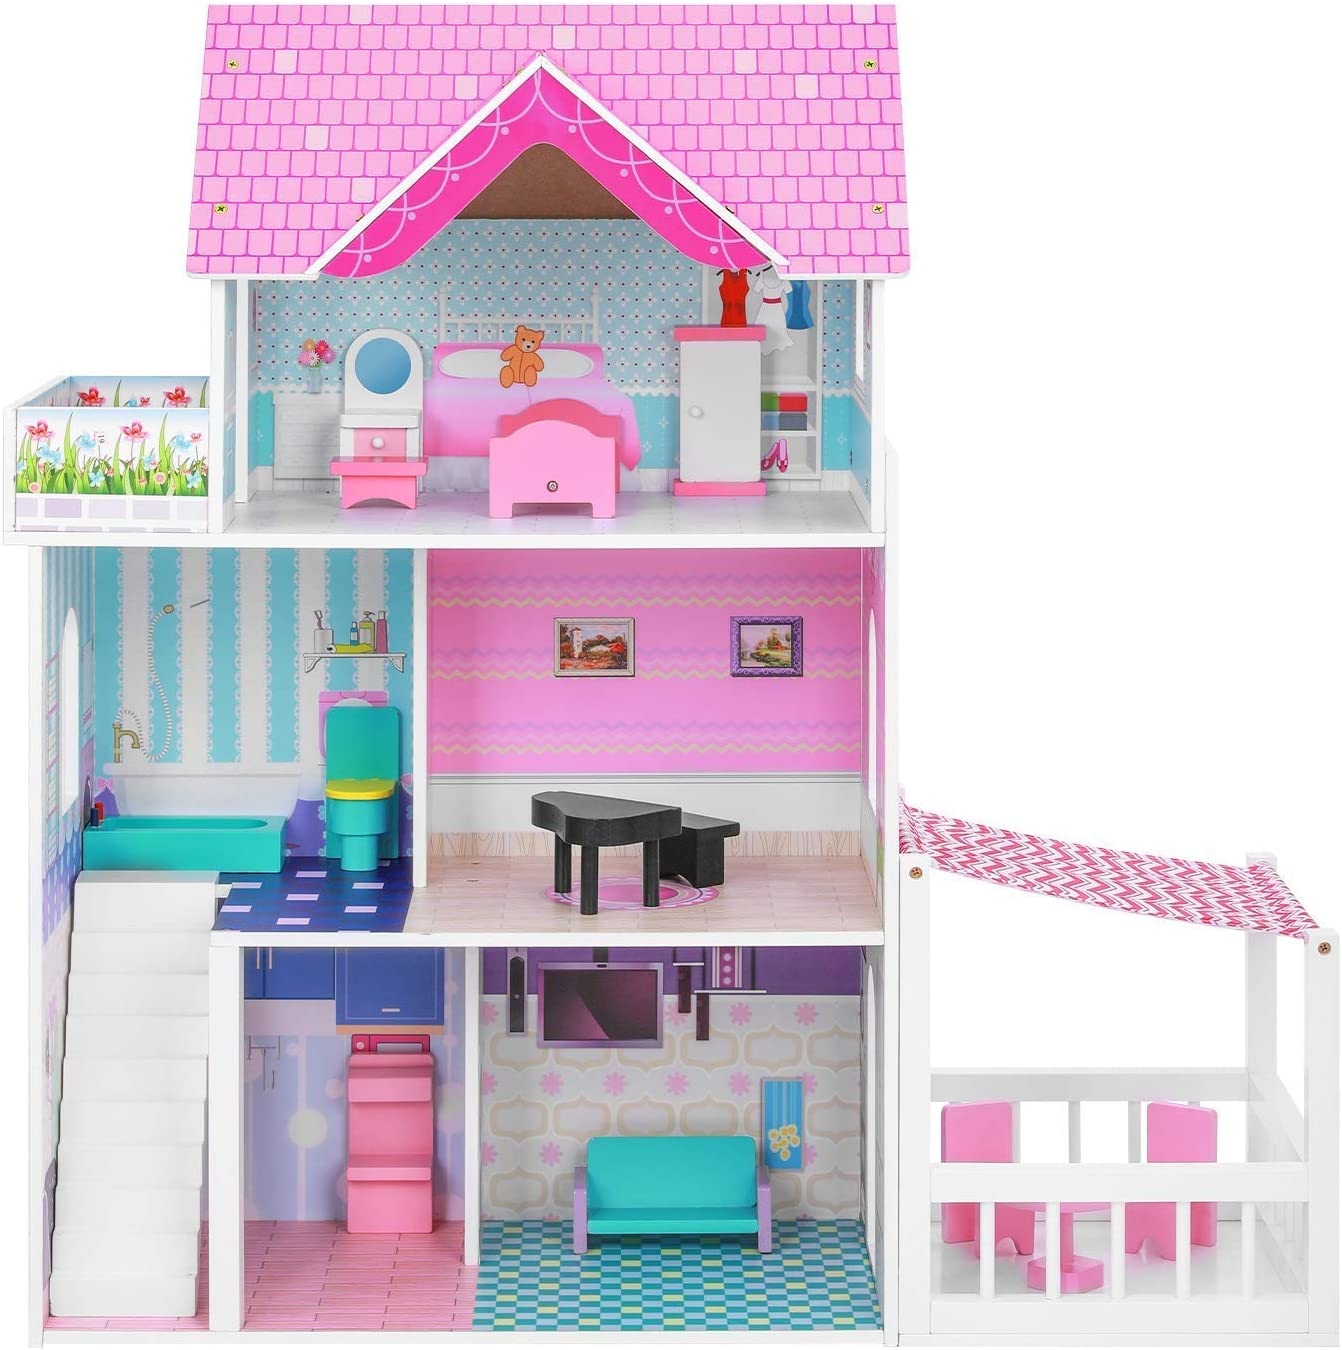 BABLE Wooden Dollhouse with Furniture Large discharge sale Littl Super beauty product restock quality top! House Toy Pieces for